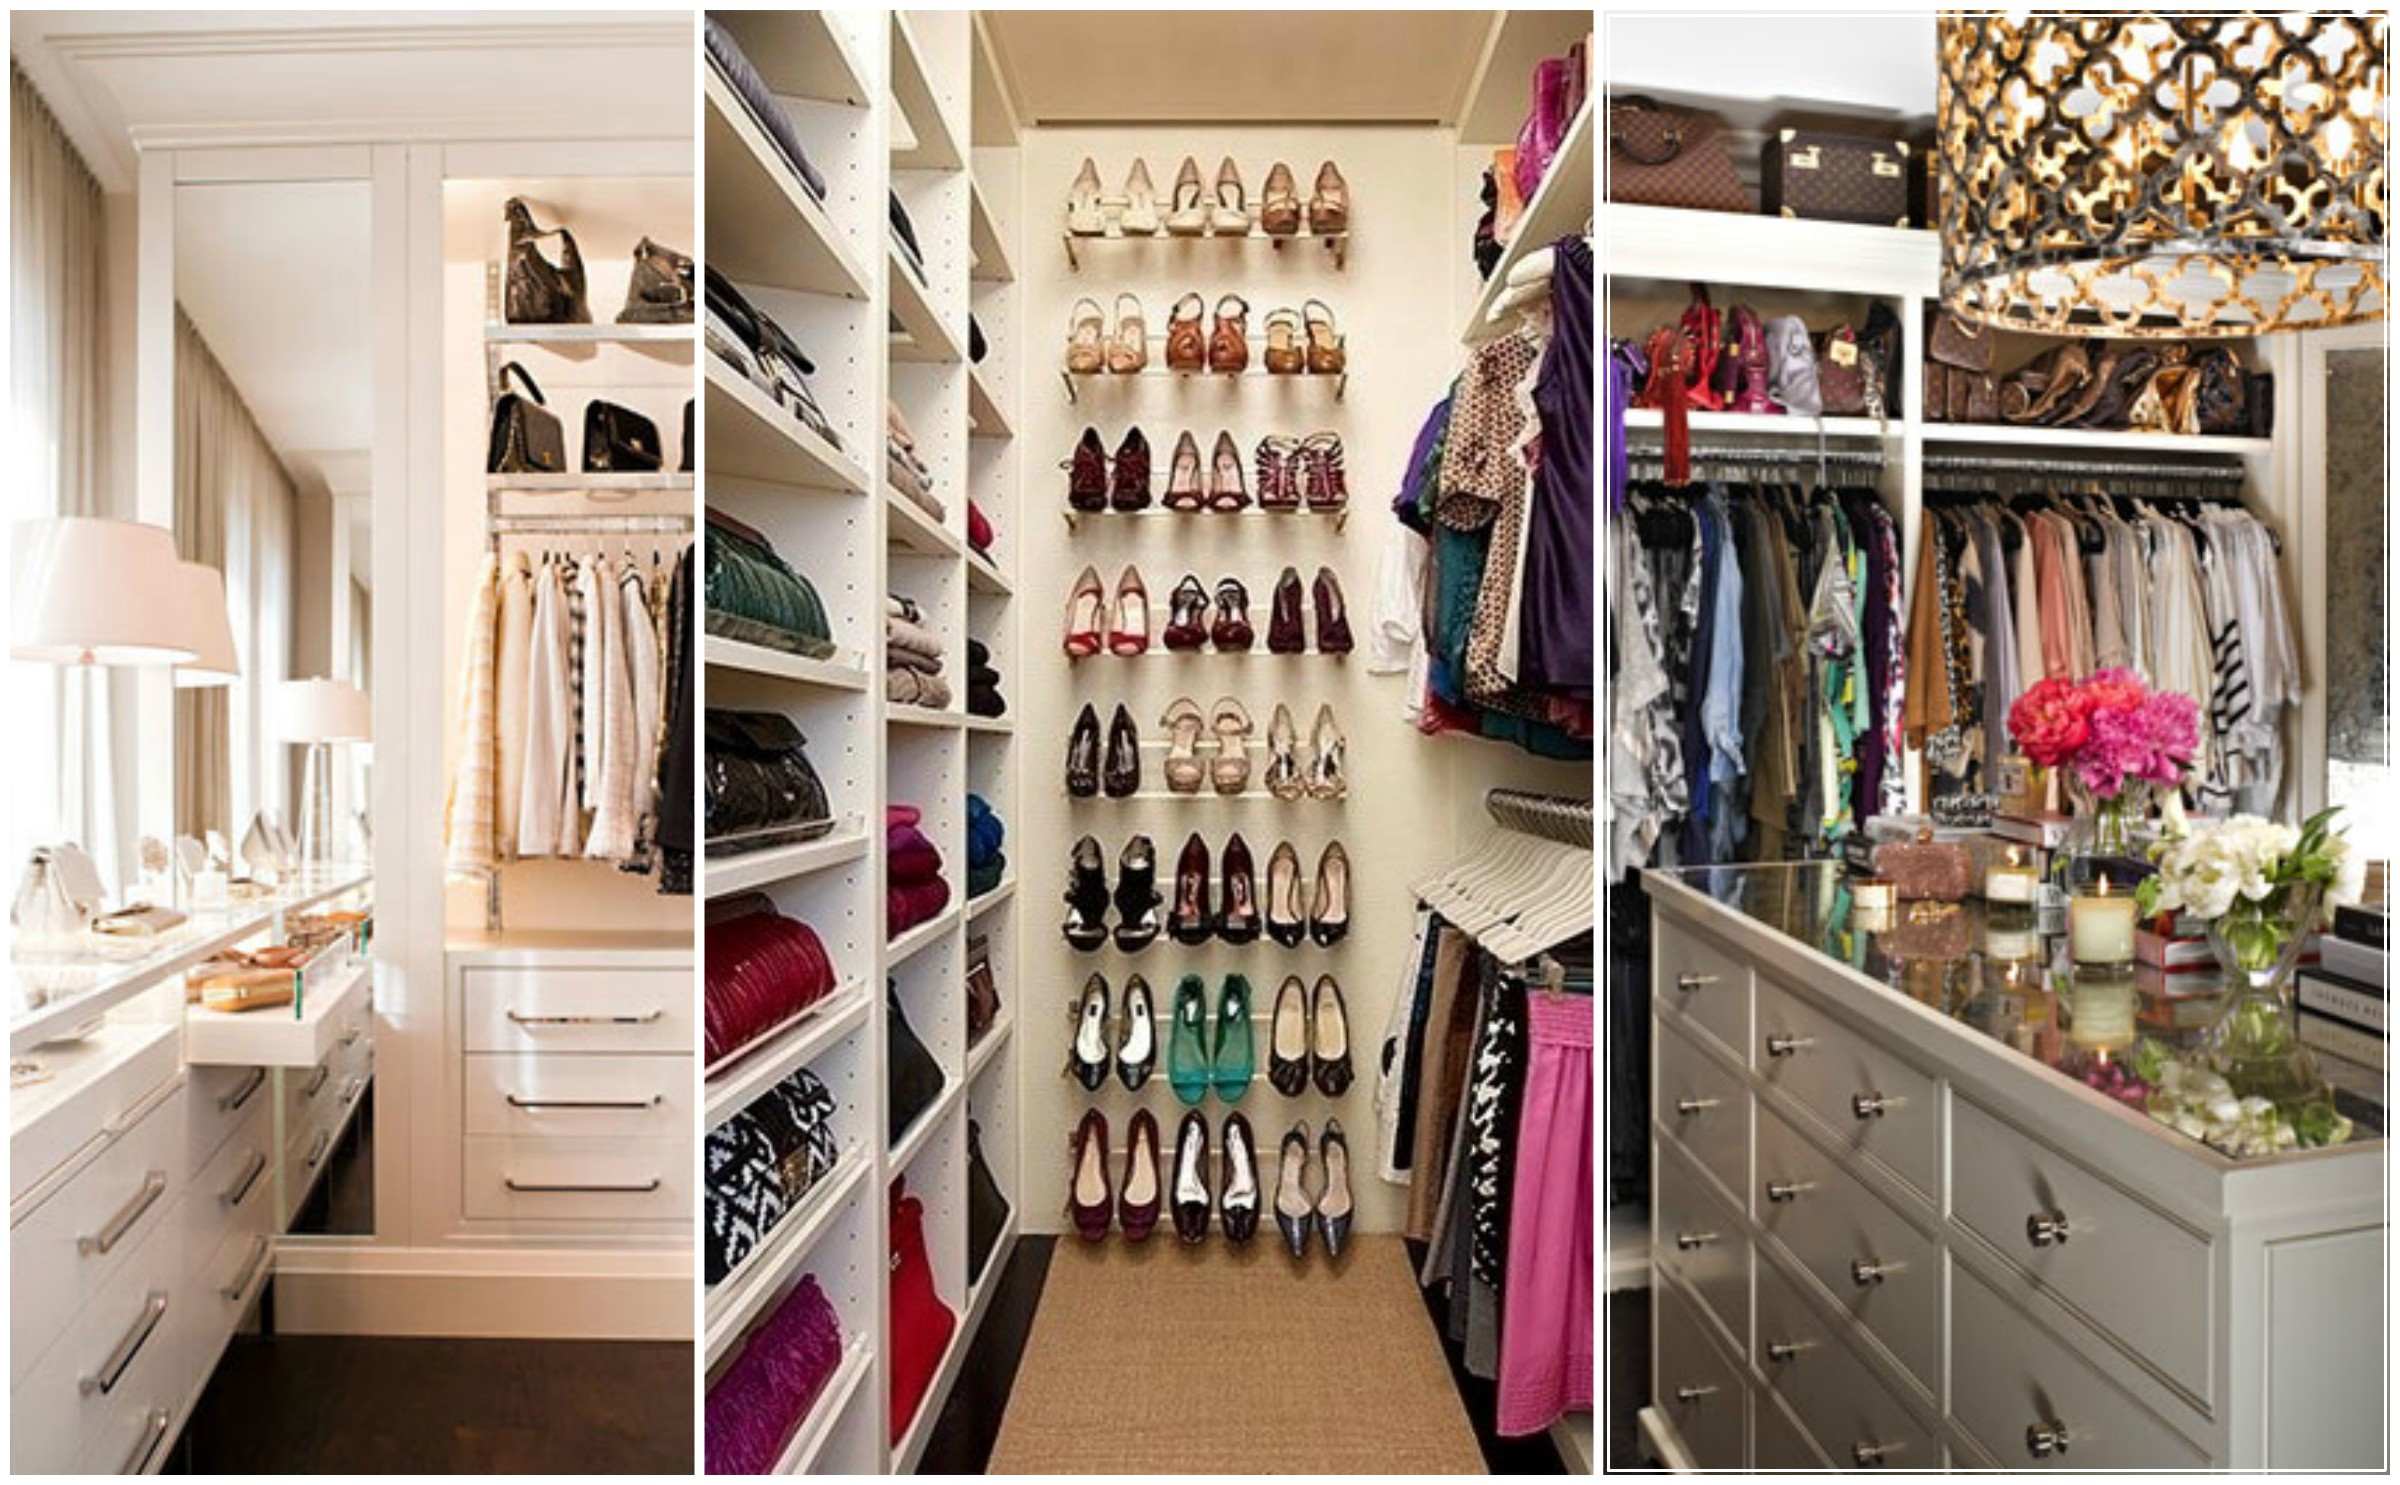 How to organize your closet for summer mystylespot for How to organize your walk in closet